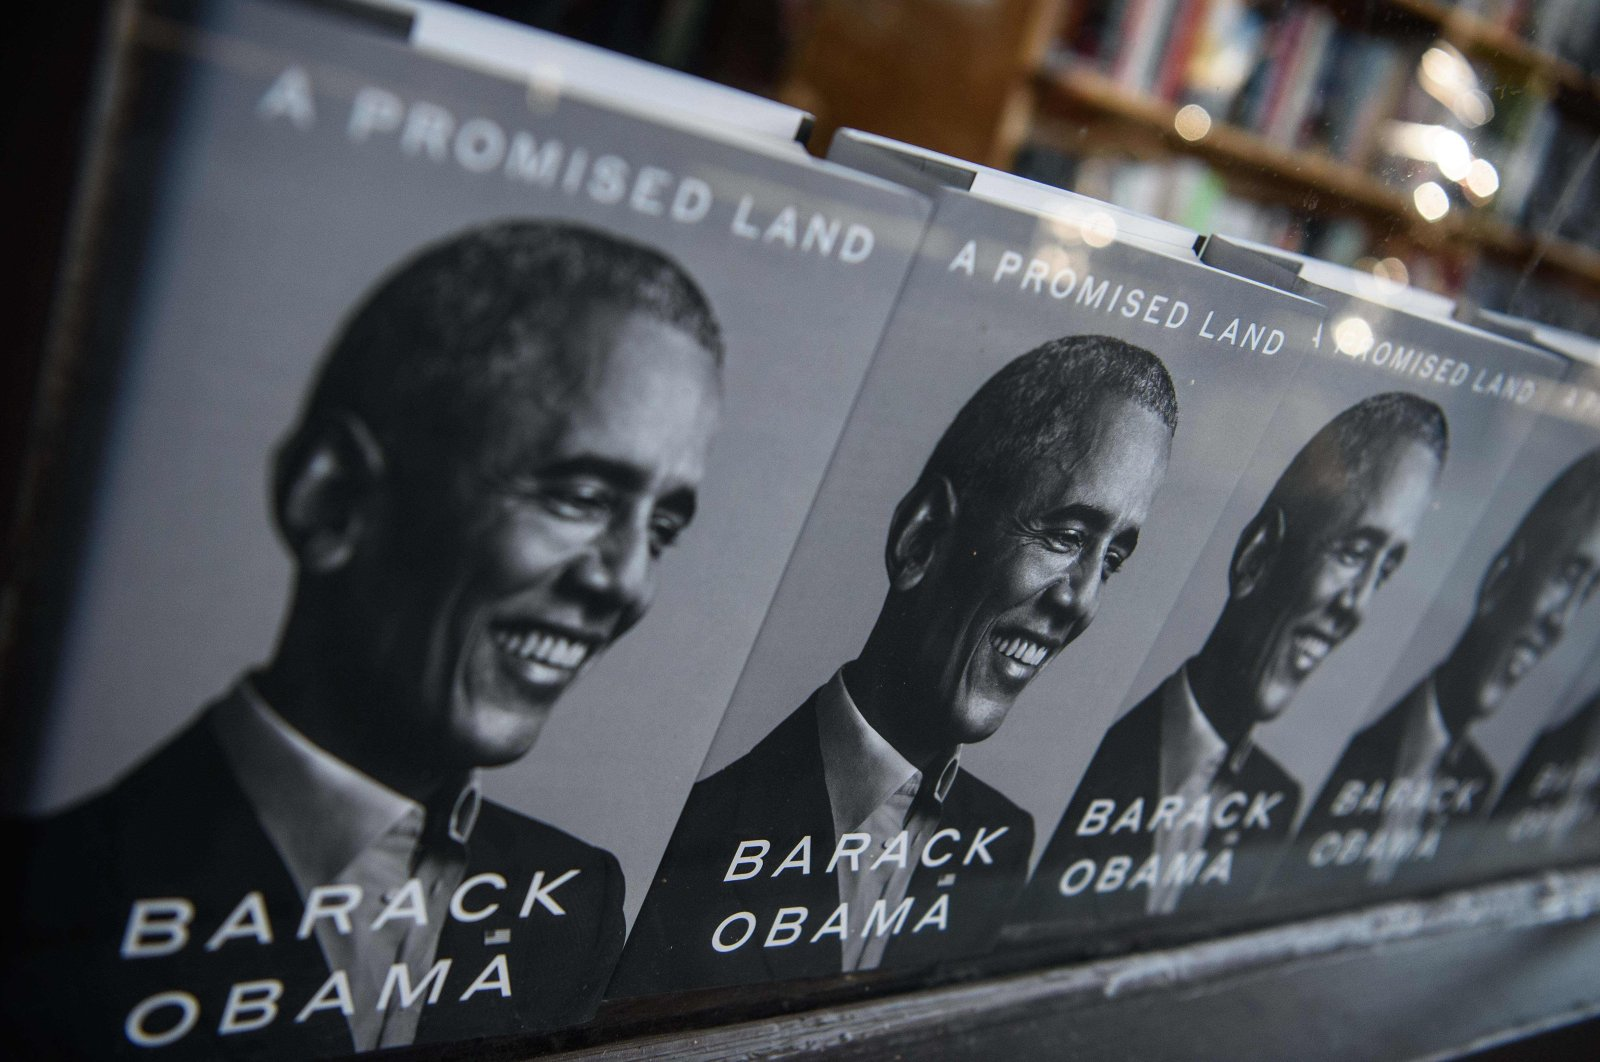 """Former U.S. President Barack Obama's new book """"A Promised Land"""" is seen in a bookstore in Washington, D.C., on Nov. 17, 2020. (AFP Photo)"""